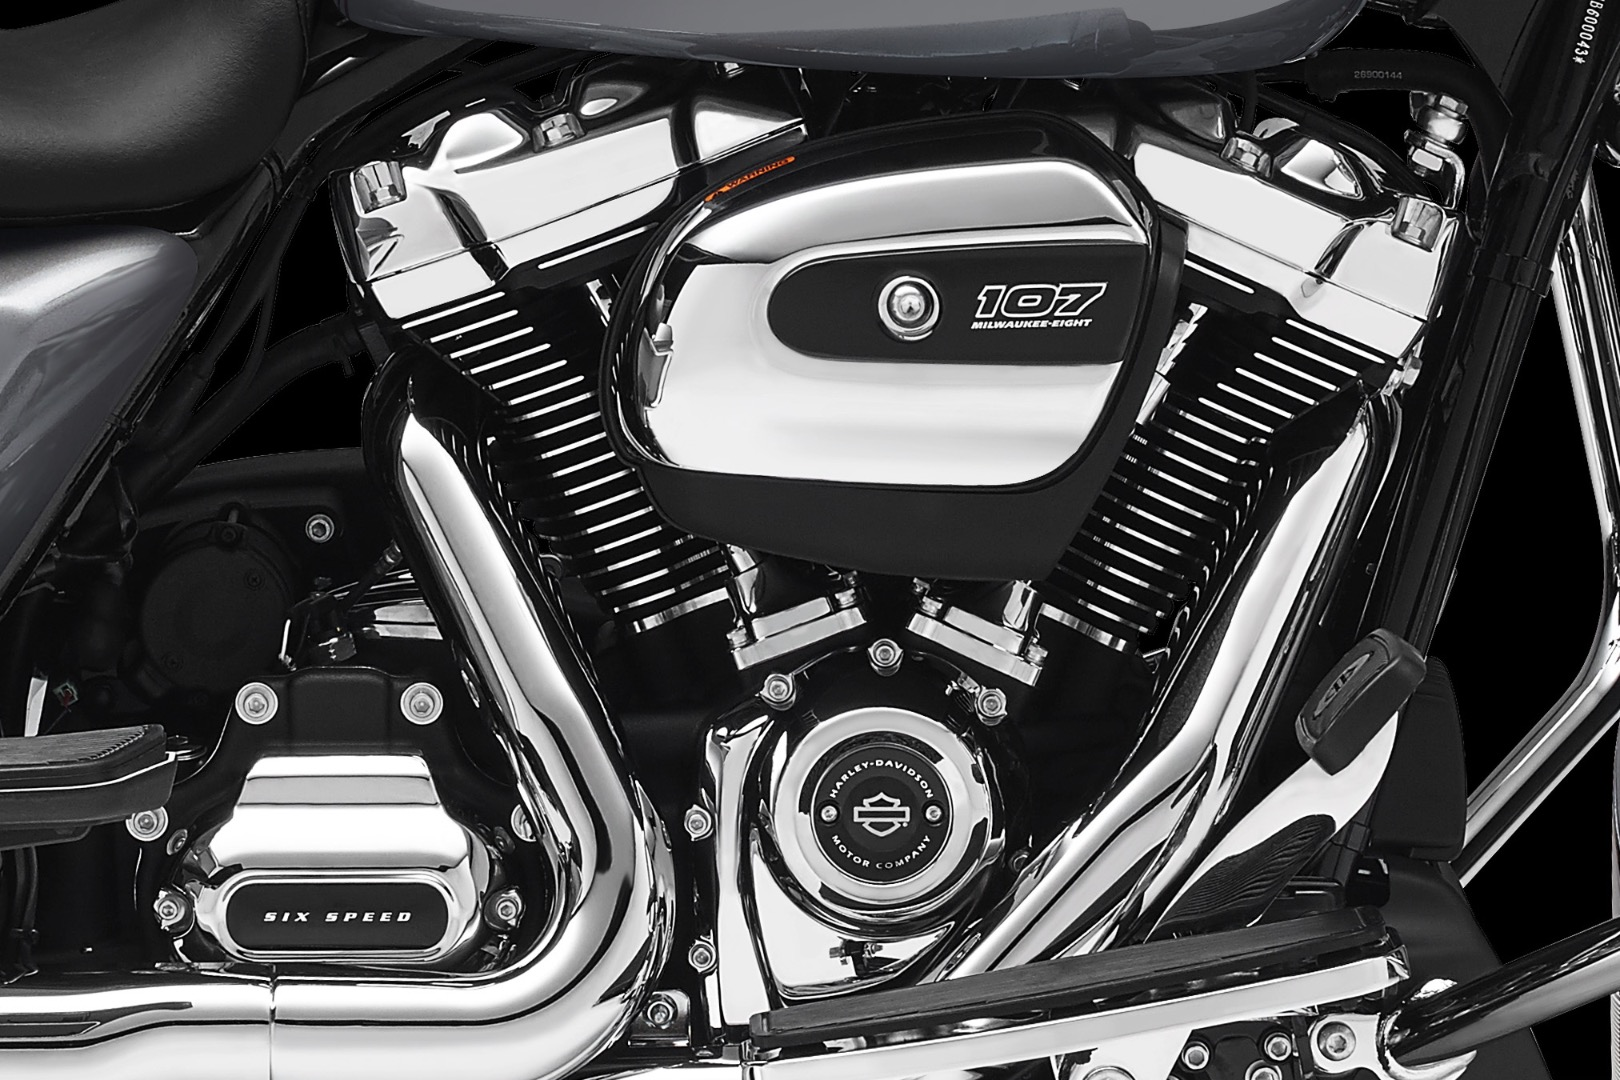 2017 harley davidson milwaukee eight engines 11 fast facts 2017 harley davidson milwaukee eight motor profile pooptronica